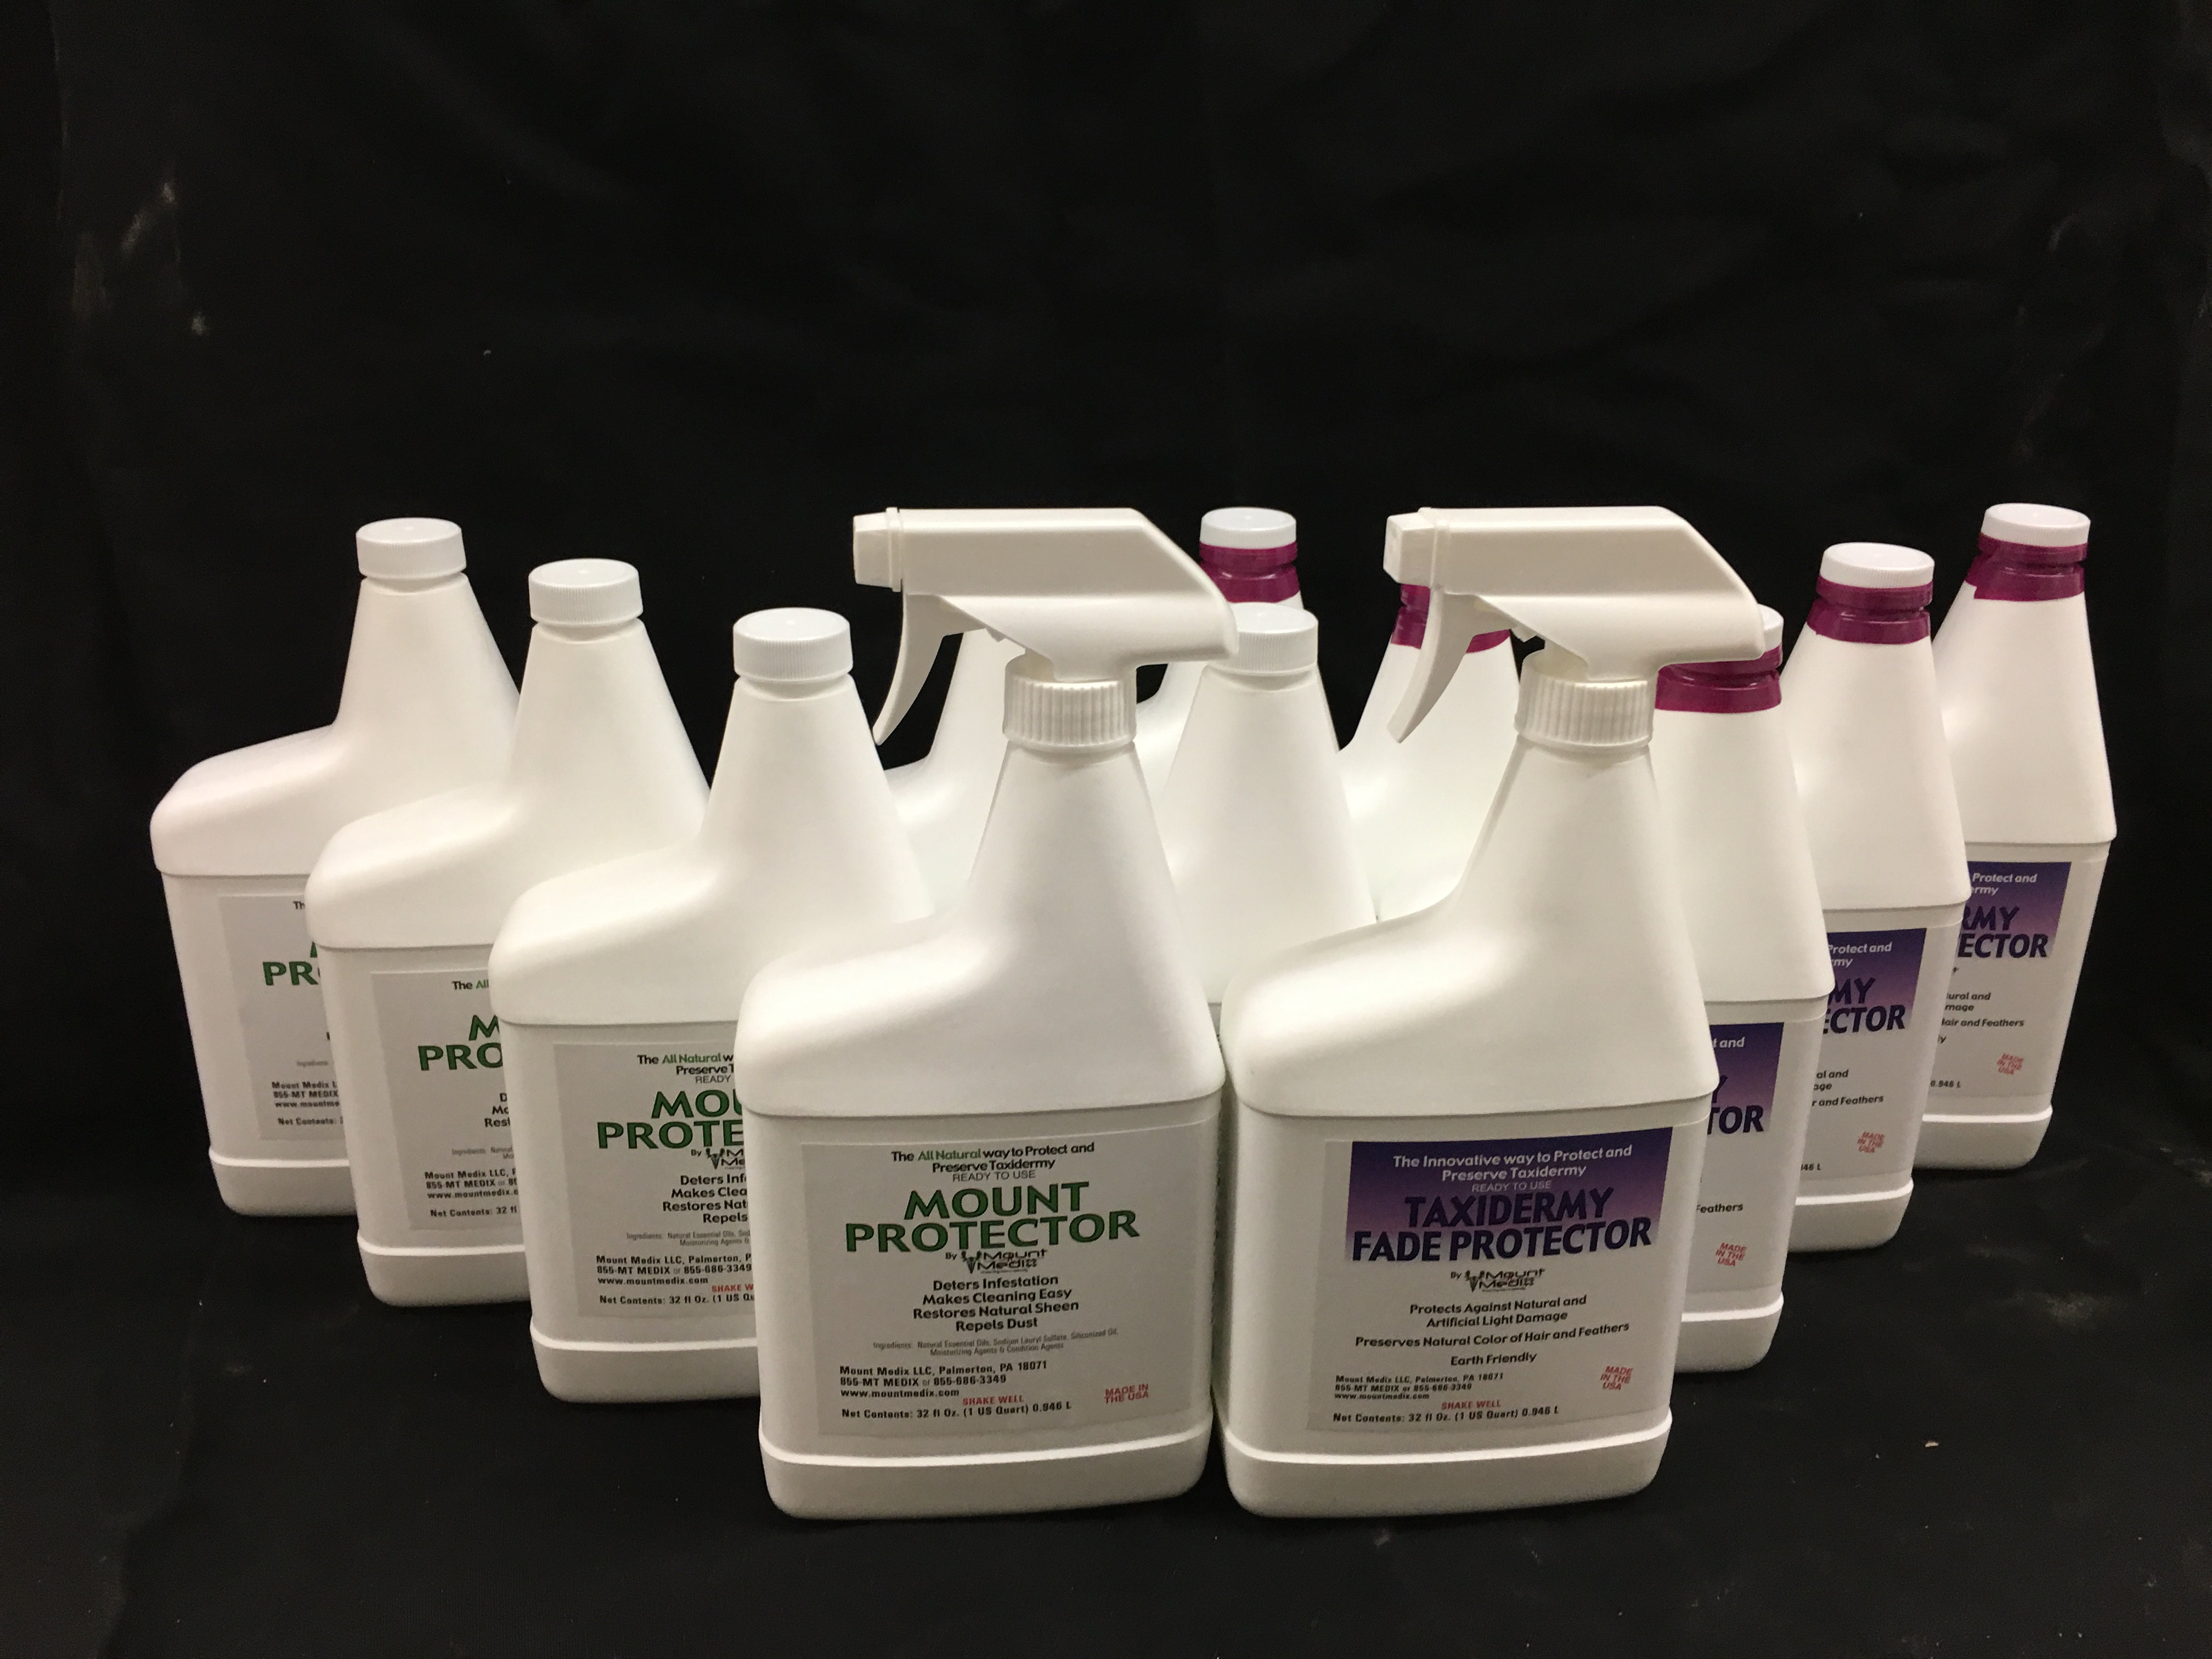 Case of 12 mixed Mount and Fade Protector, 12 oz